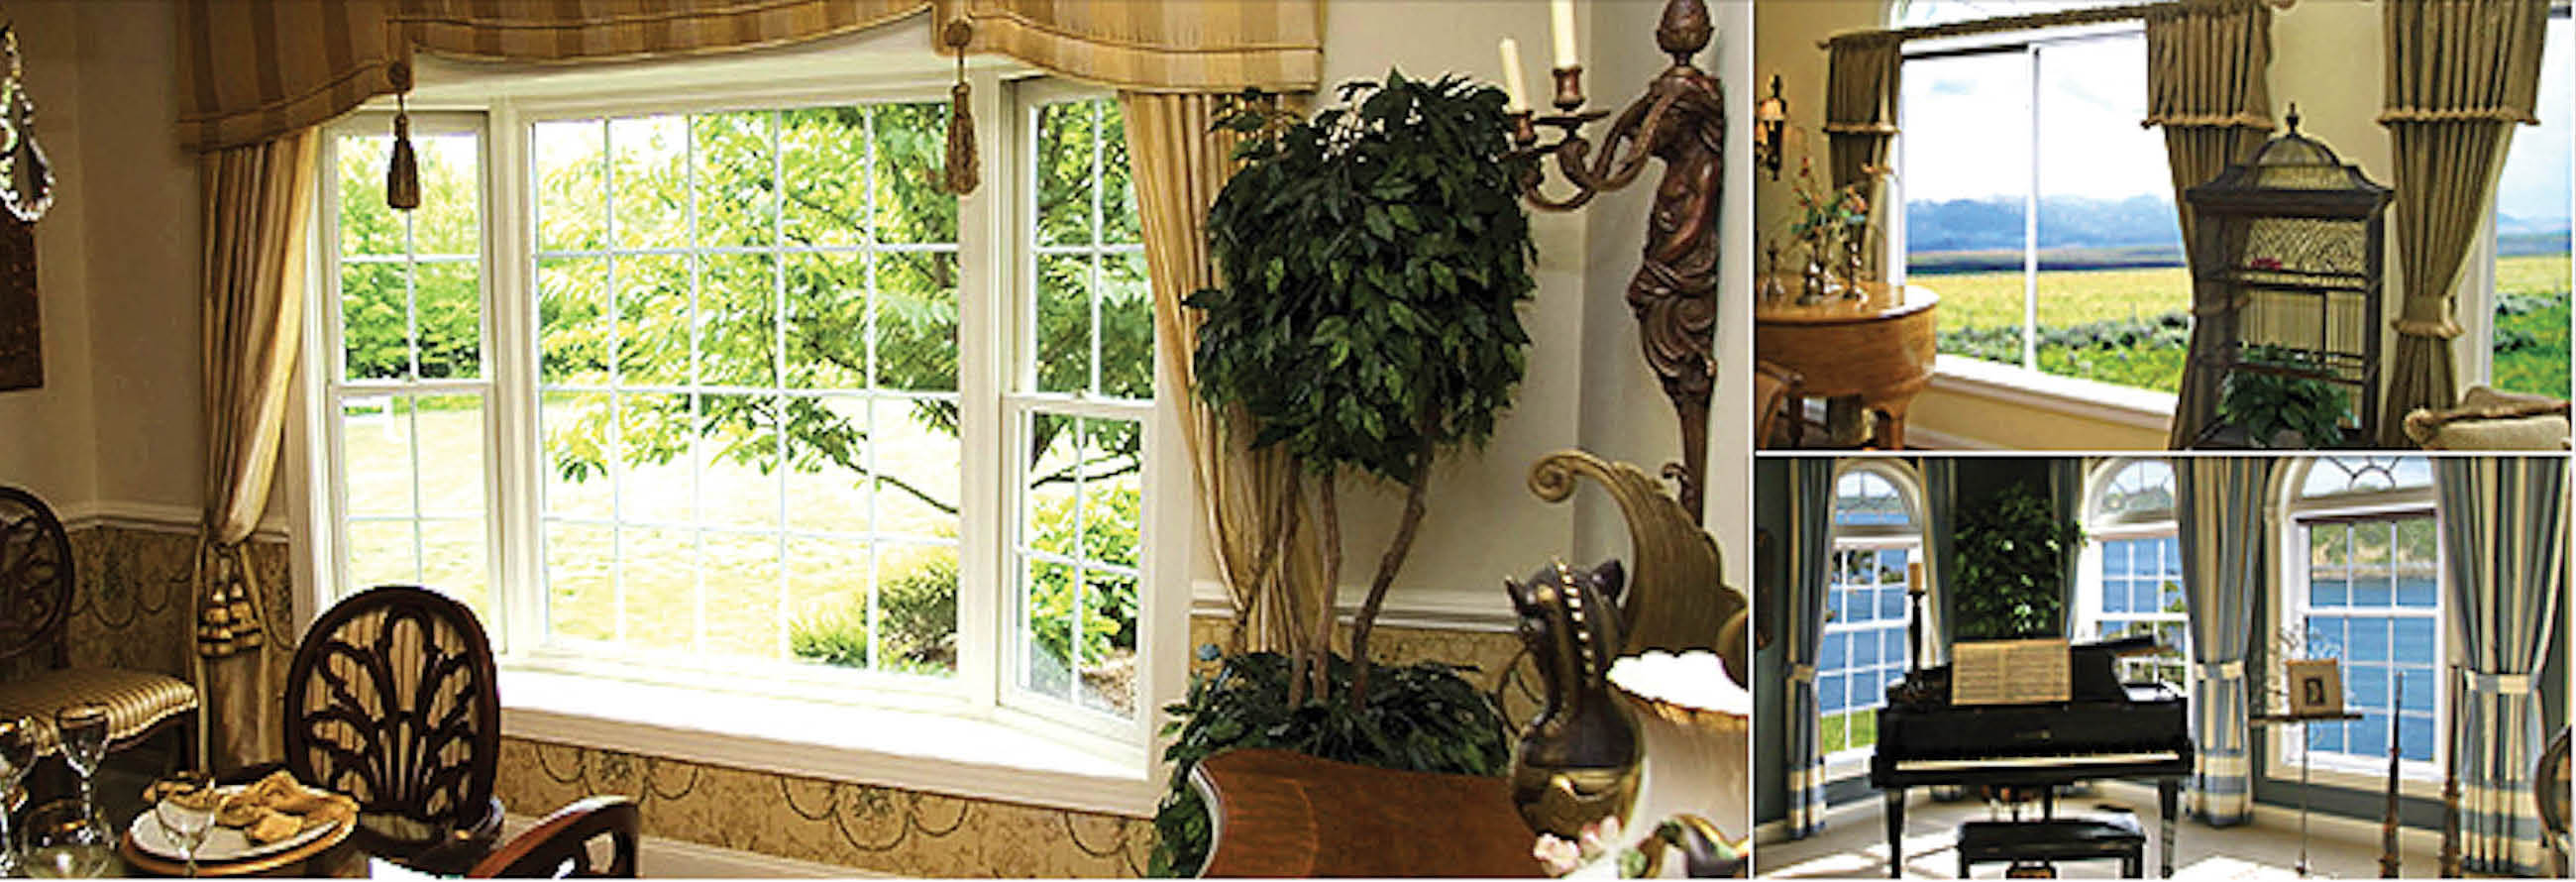 windows,window replacement,wholesalers,replacement,vinyl,windows bucks county